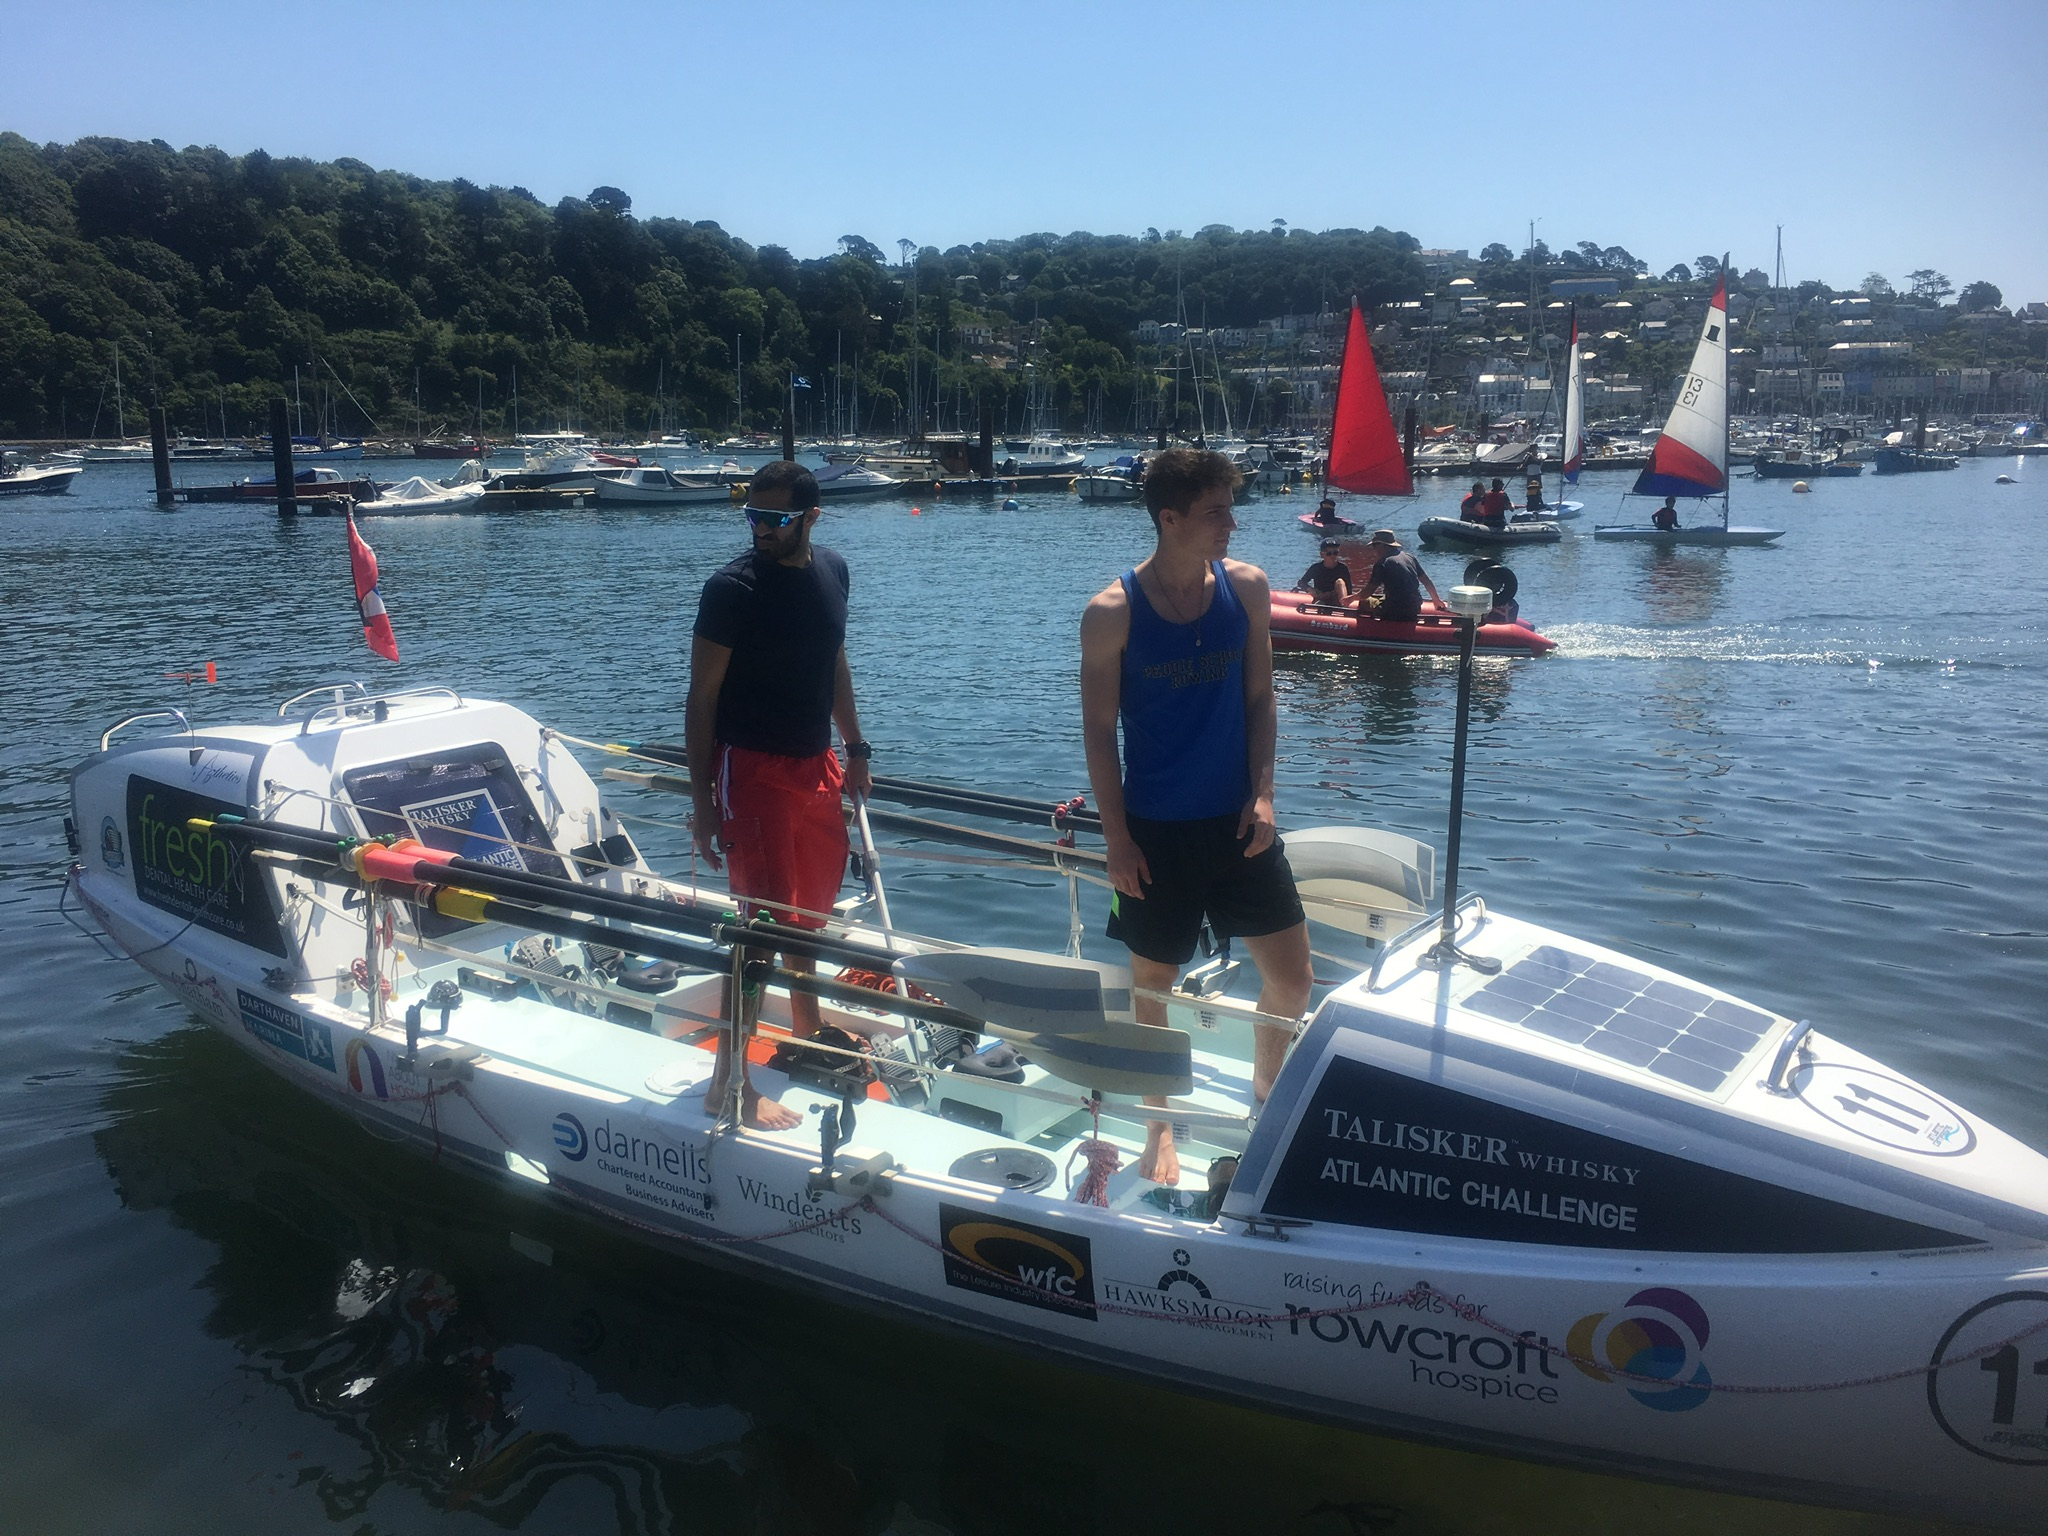 Me & SS4 pictured in Dartmouth Harbor, England.